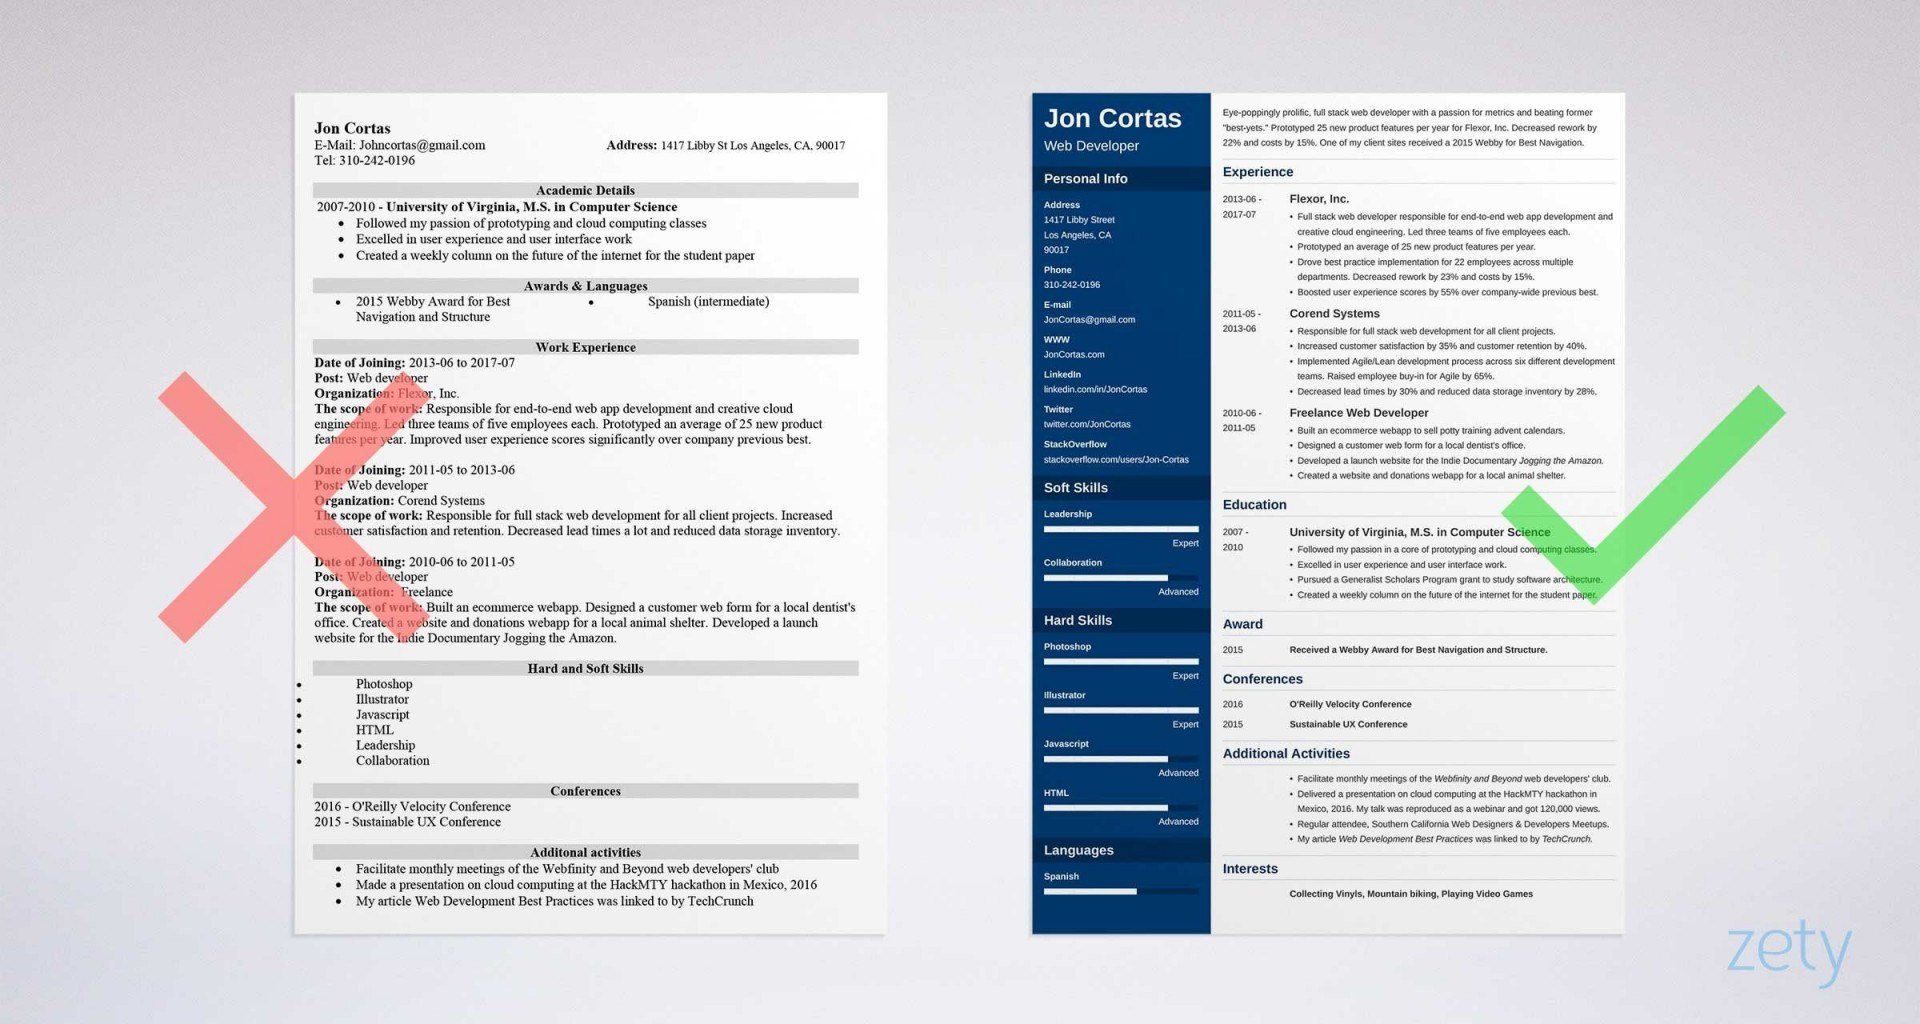 008 Unusual How To Create A Resume Template In Word 2010 Design  Make1920